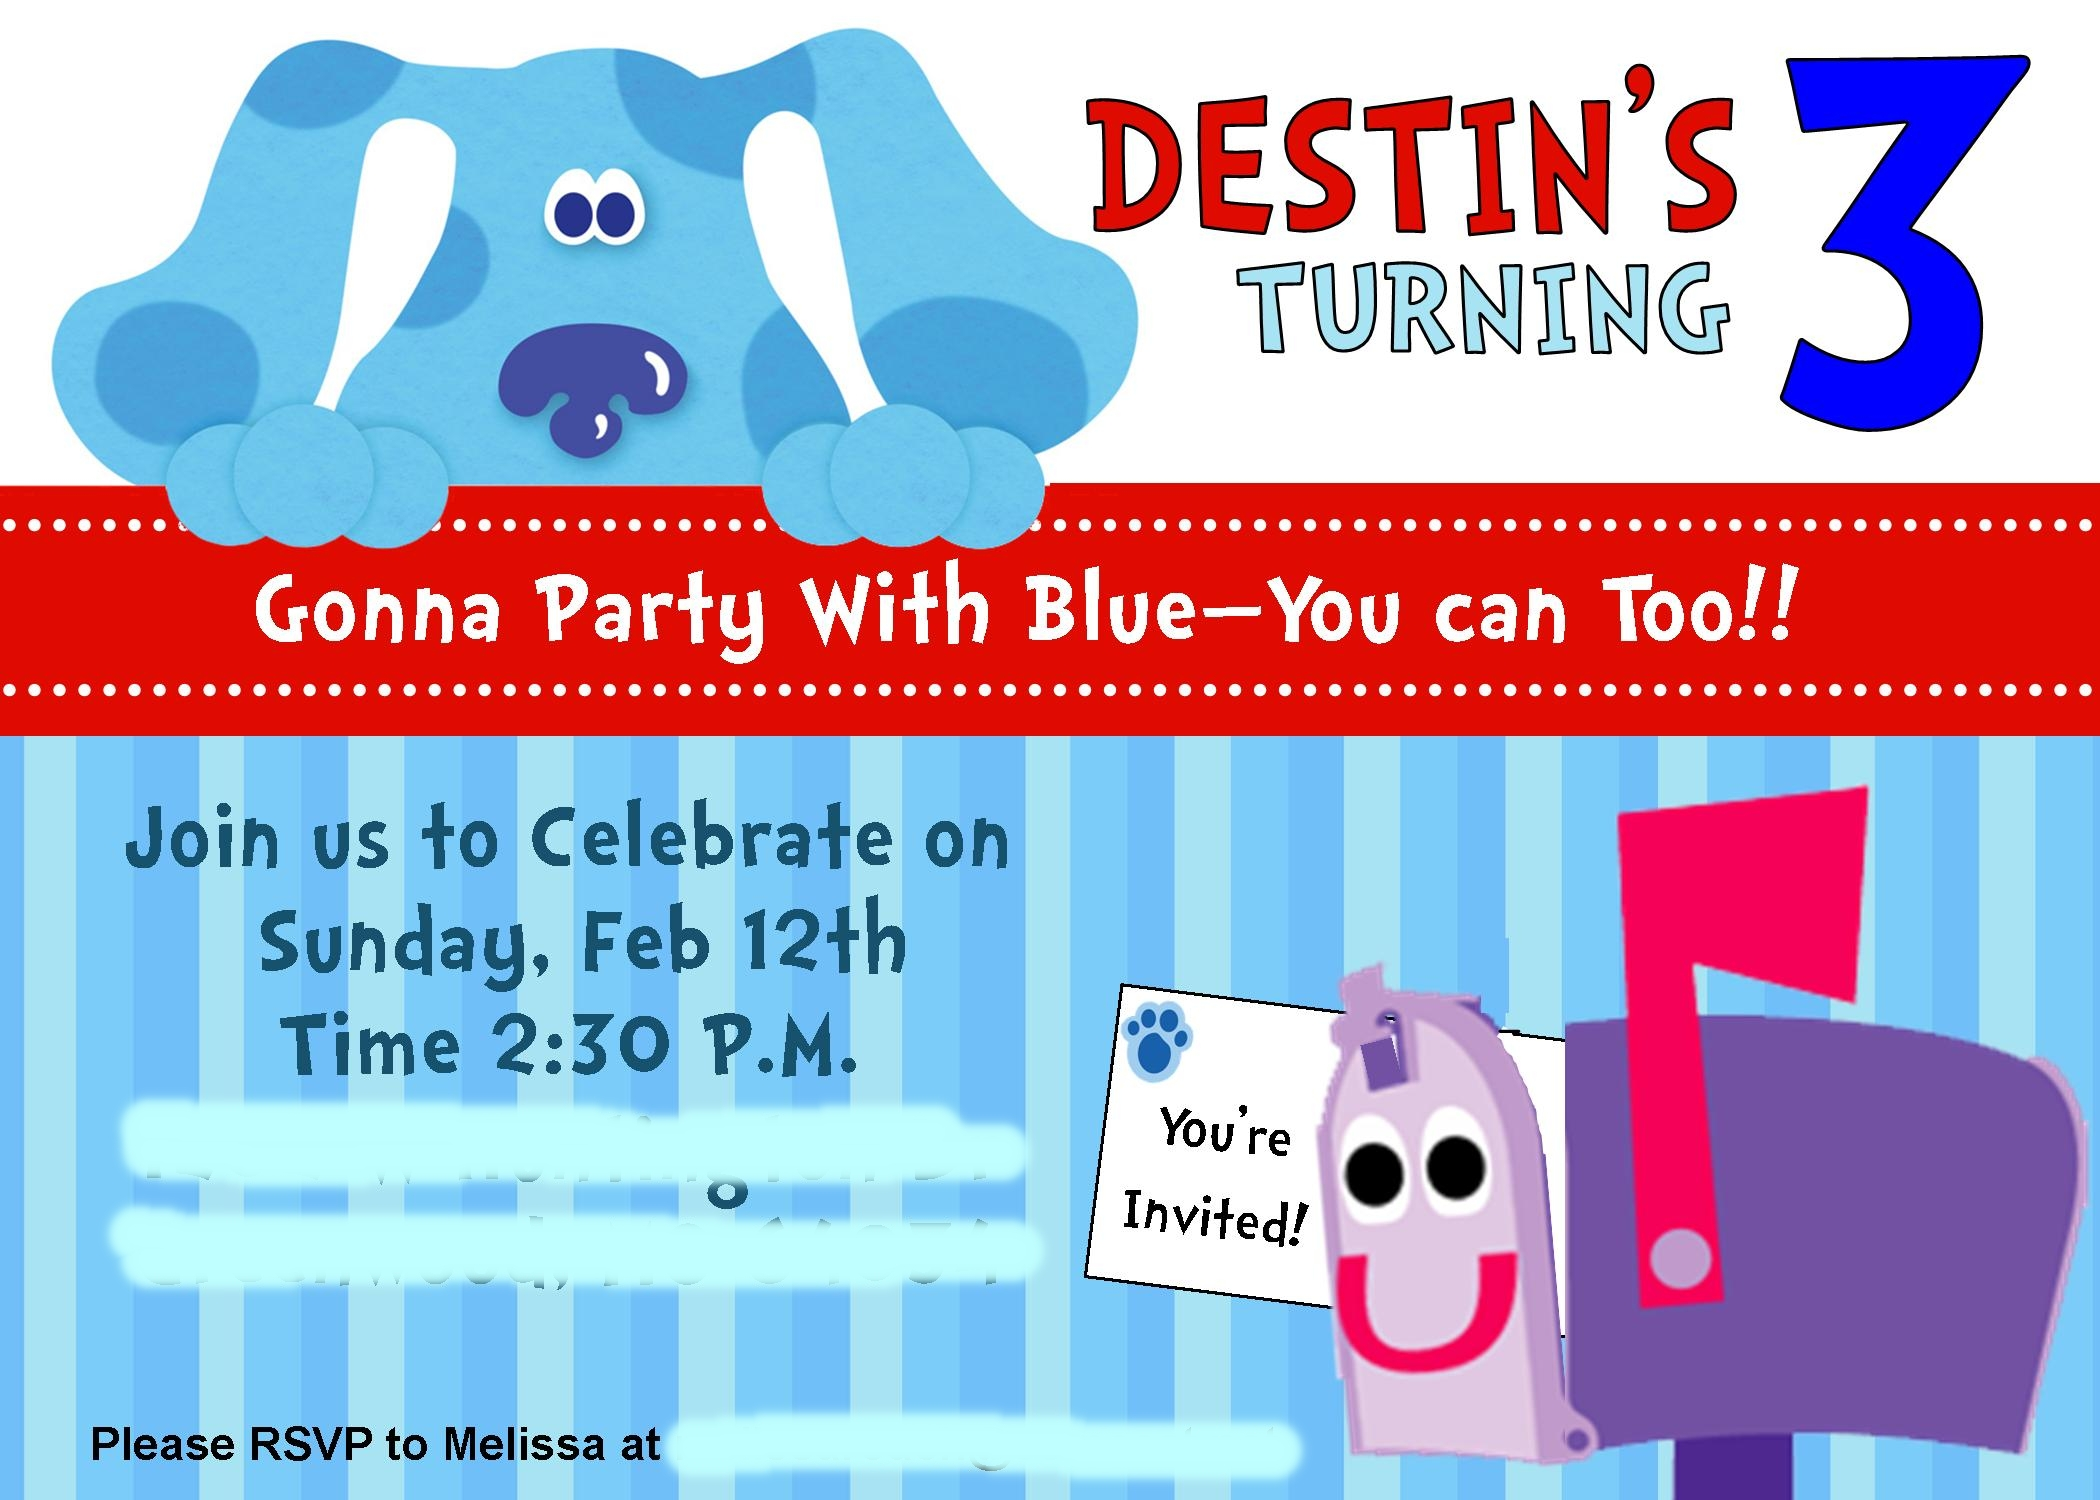 PRODUCT REVIEW: PERSONALIZED PRINTABLE BLUES CLUES PARTY KIT ...